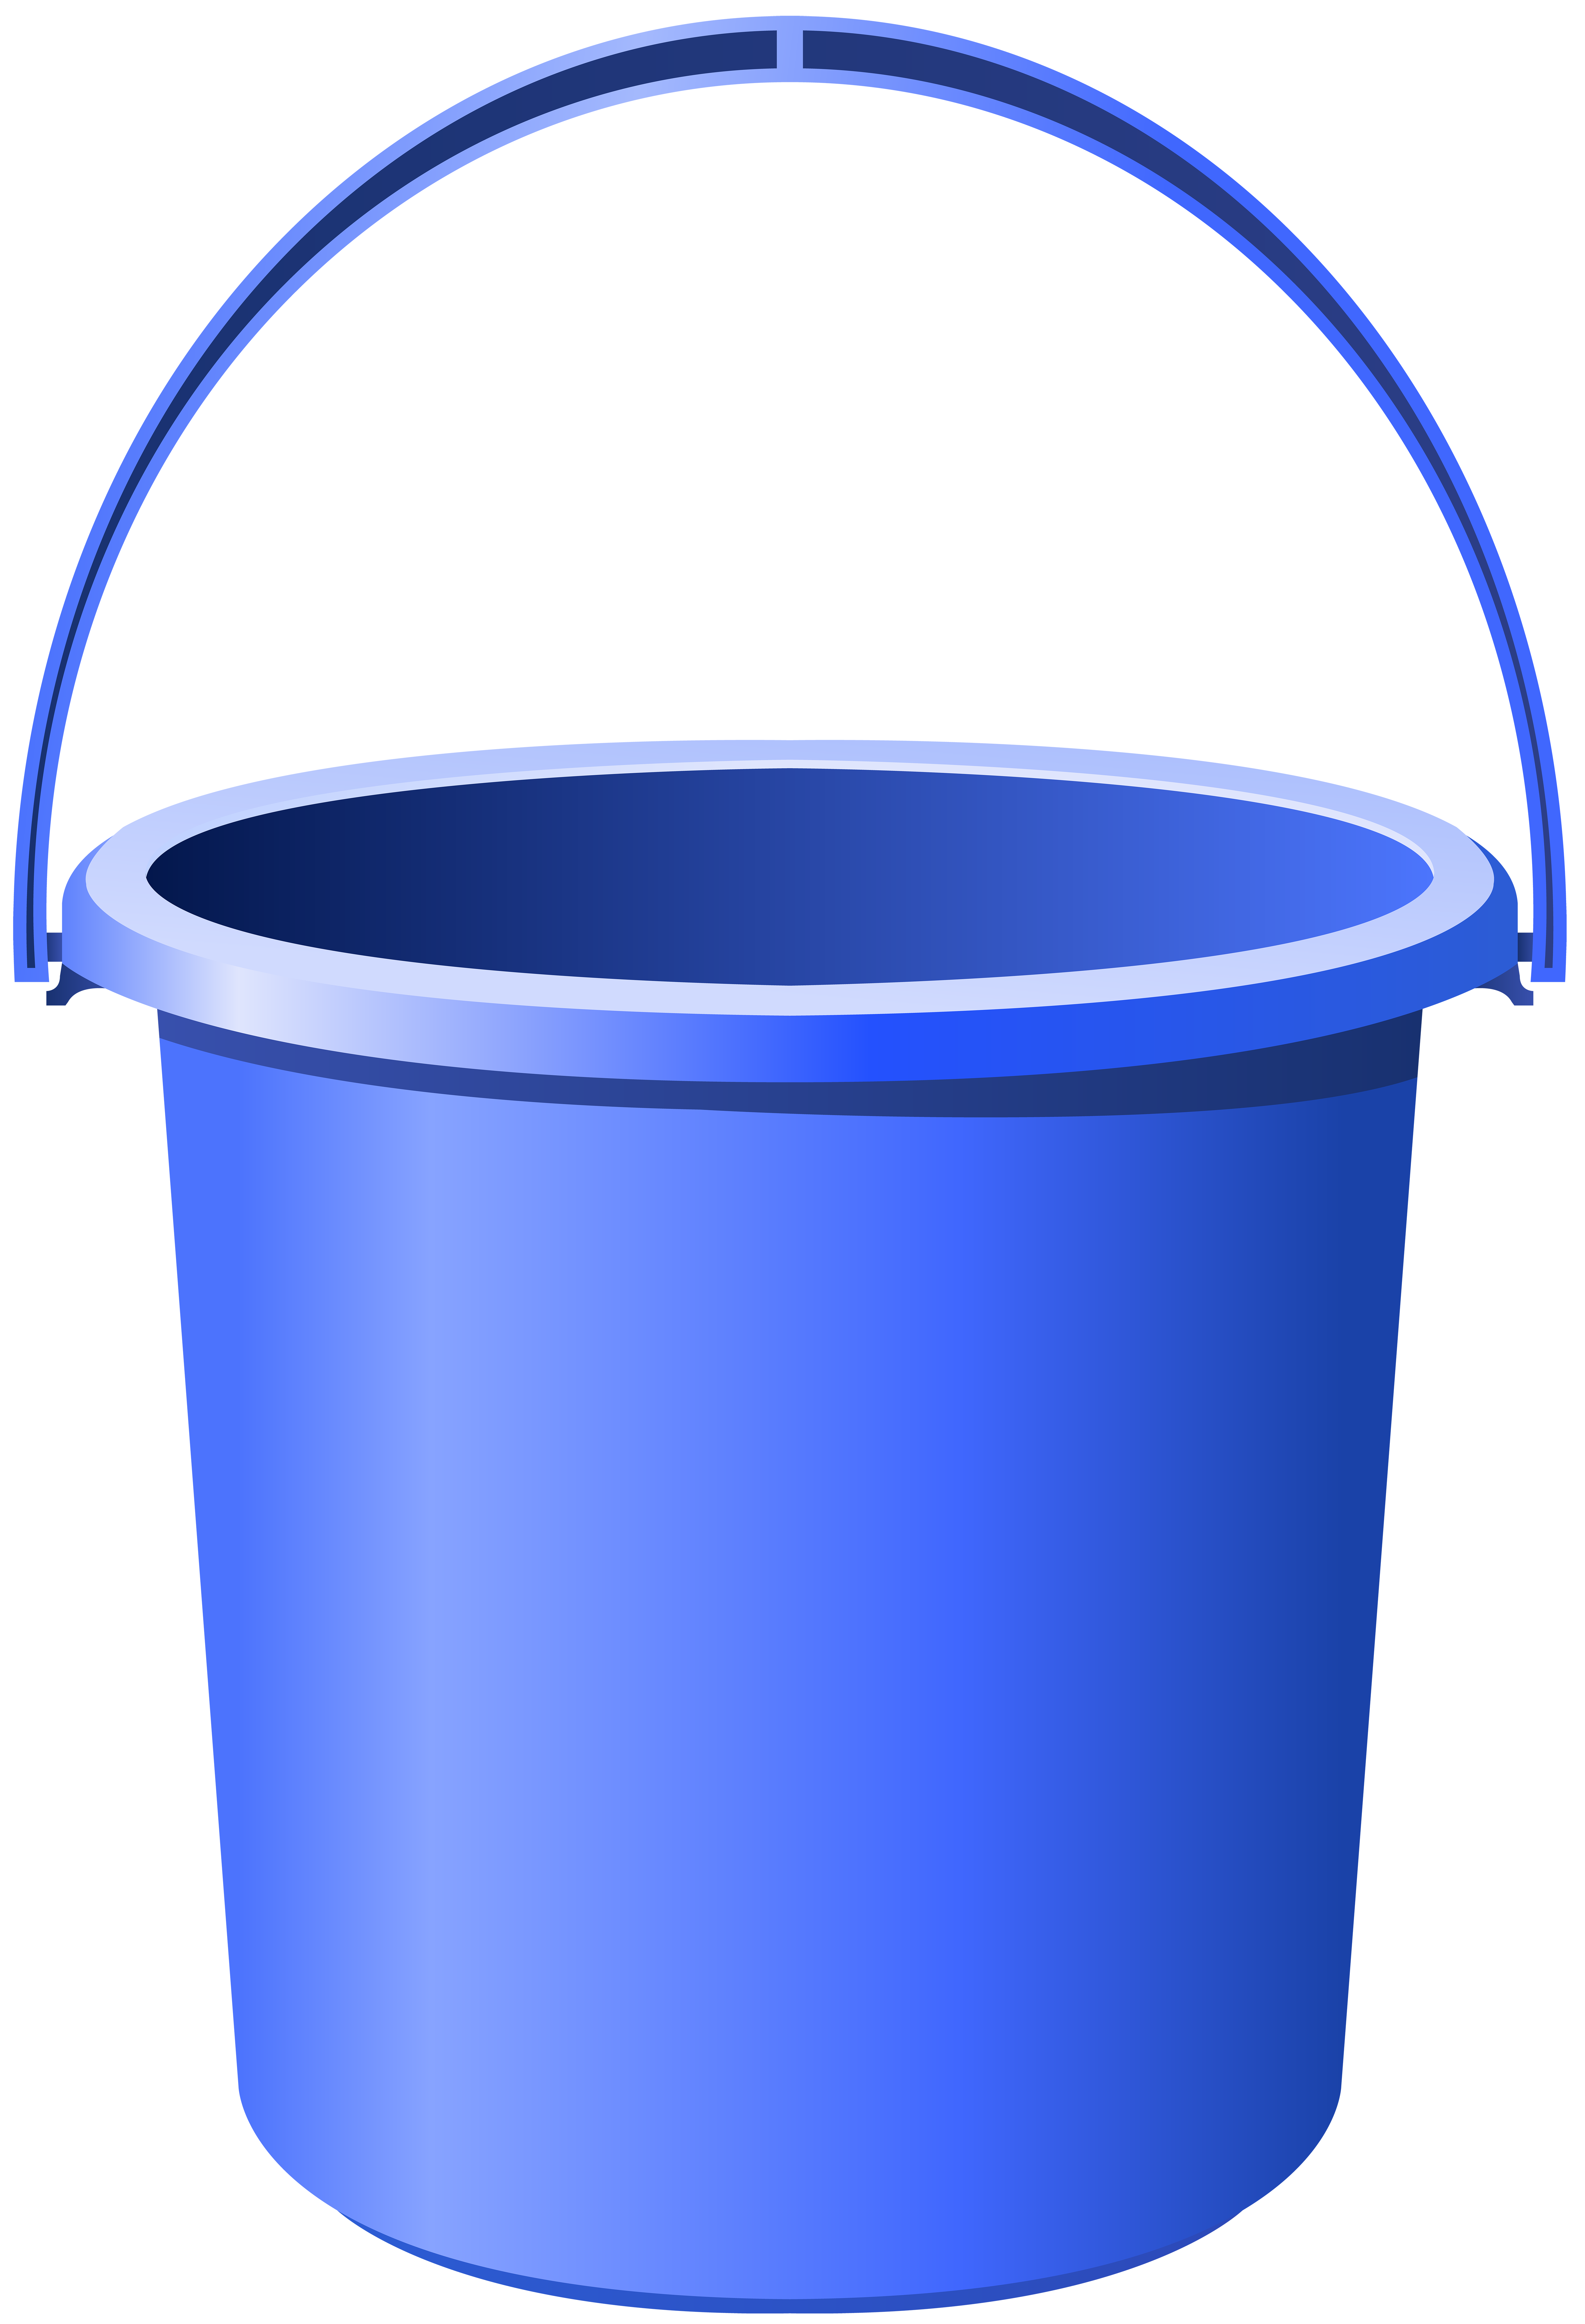 Blue Bucket PNG Clip Art Image.